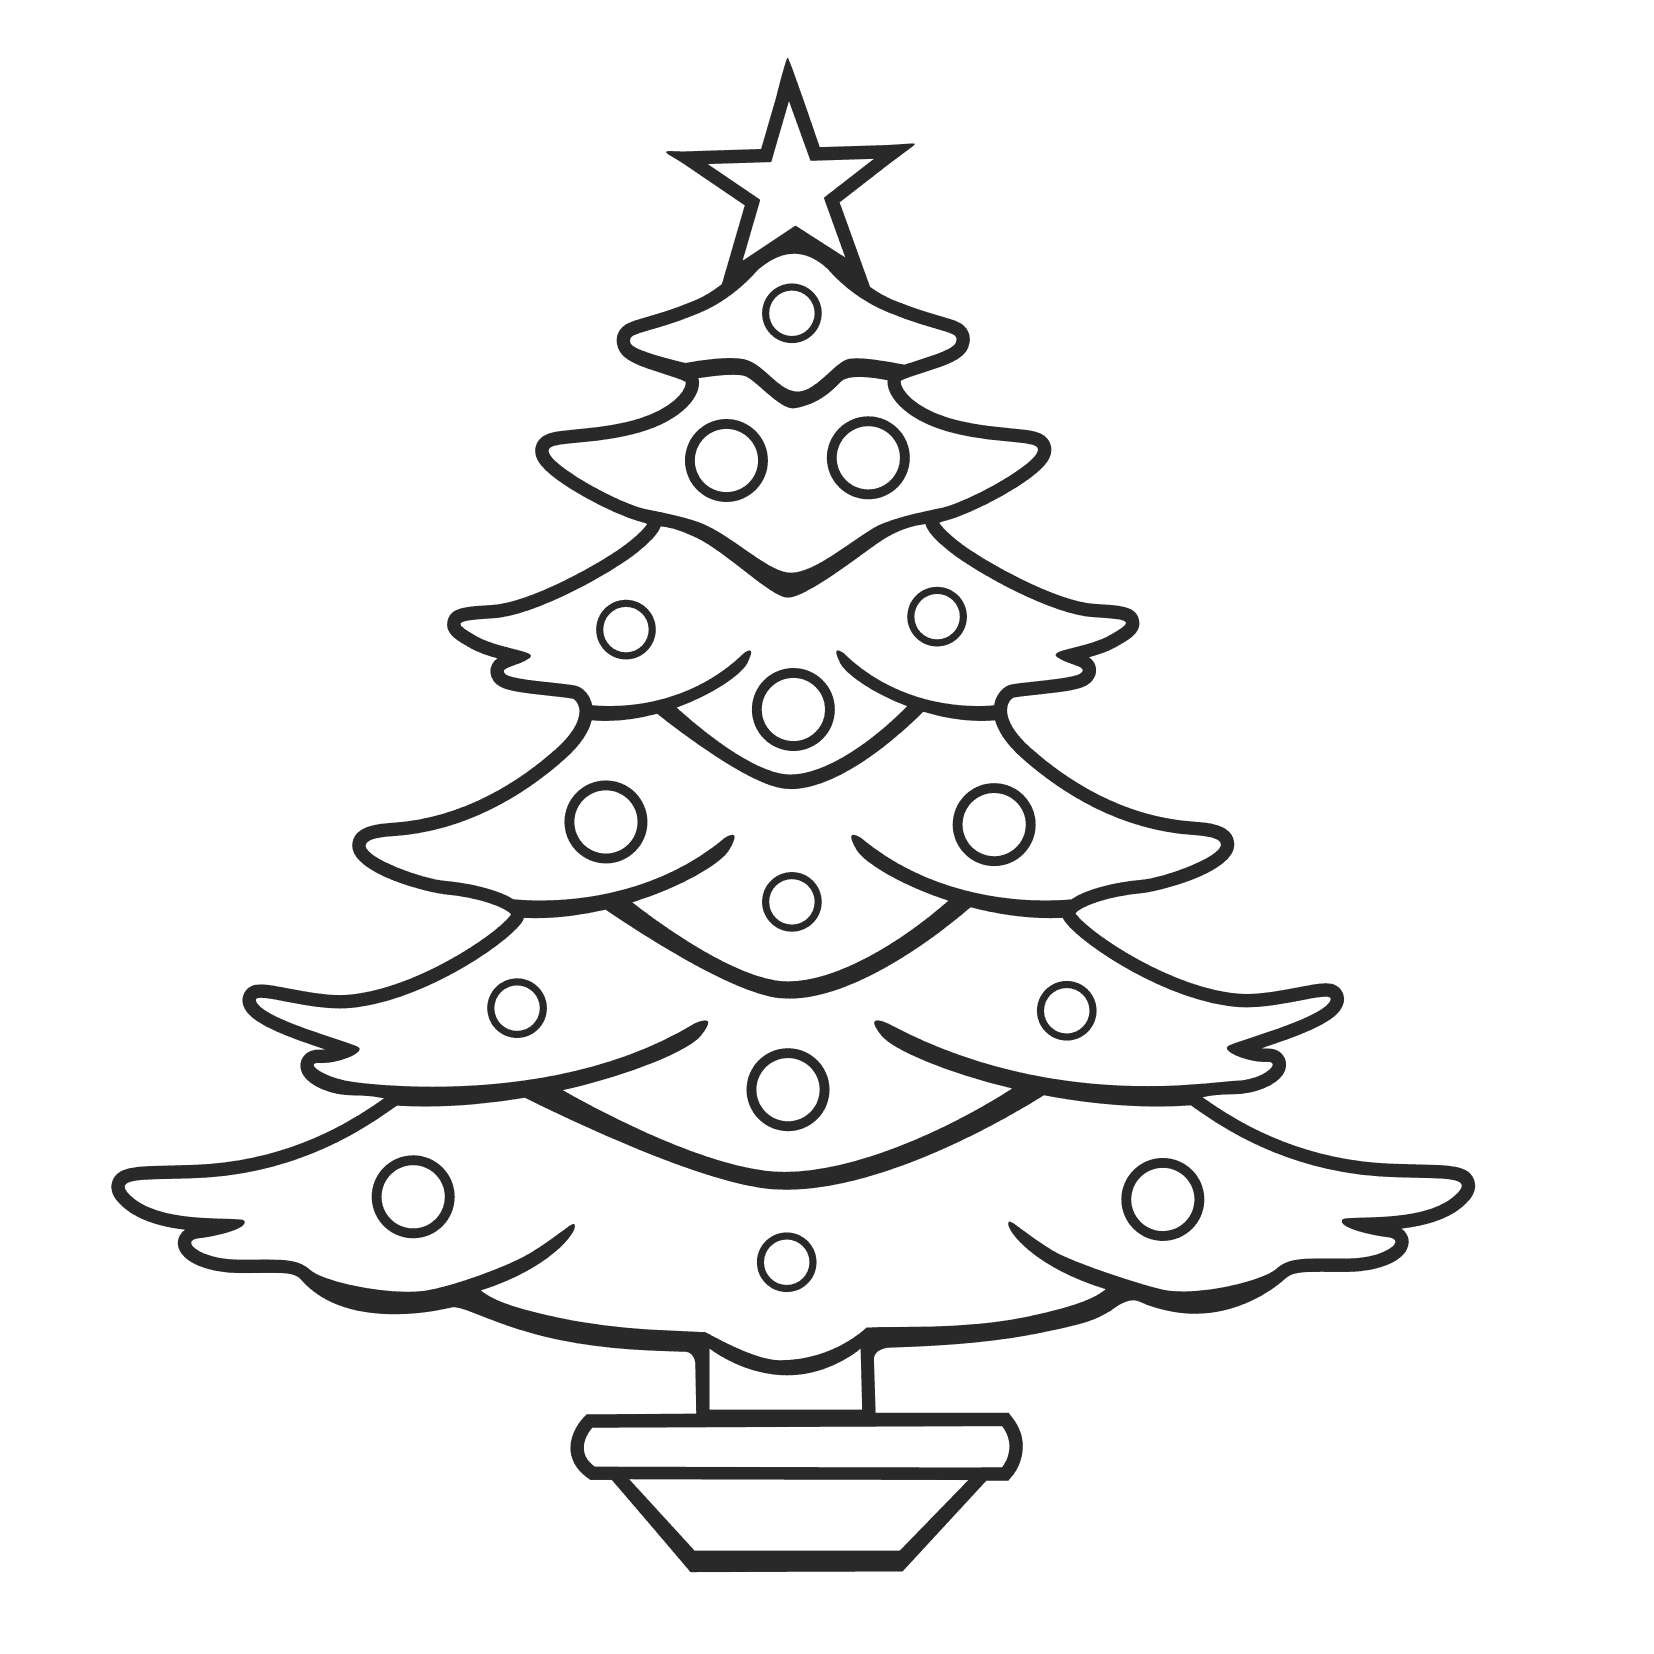 Santa Christmas Tree Coloring Page With Themed Trees Lovely Claus And